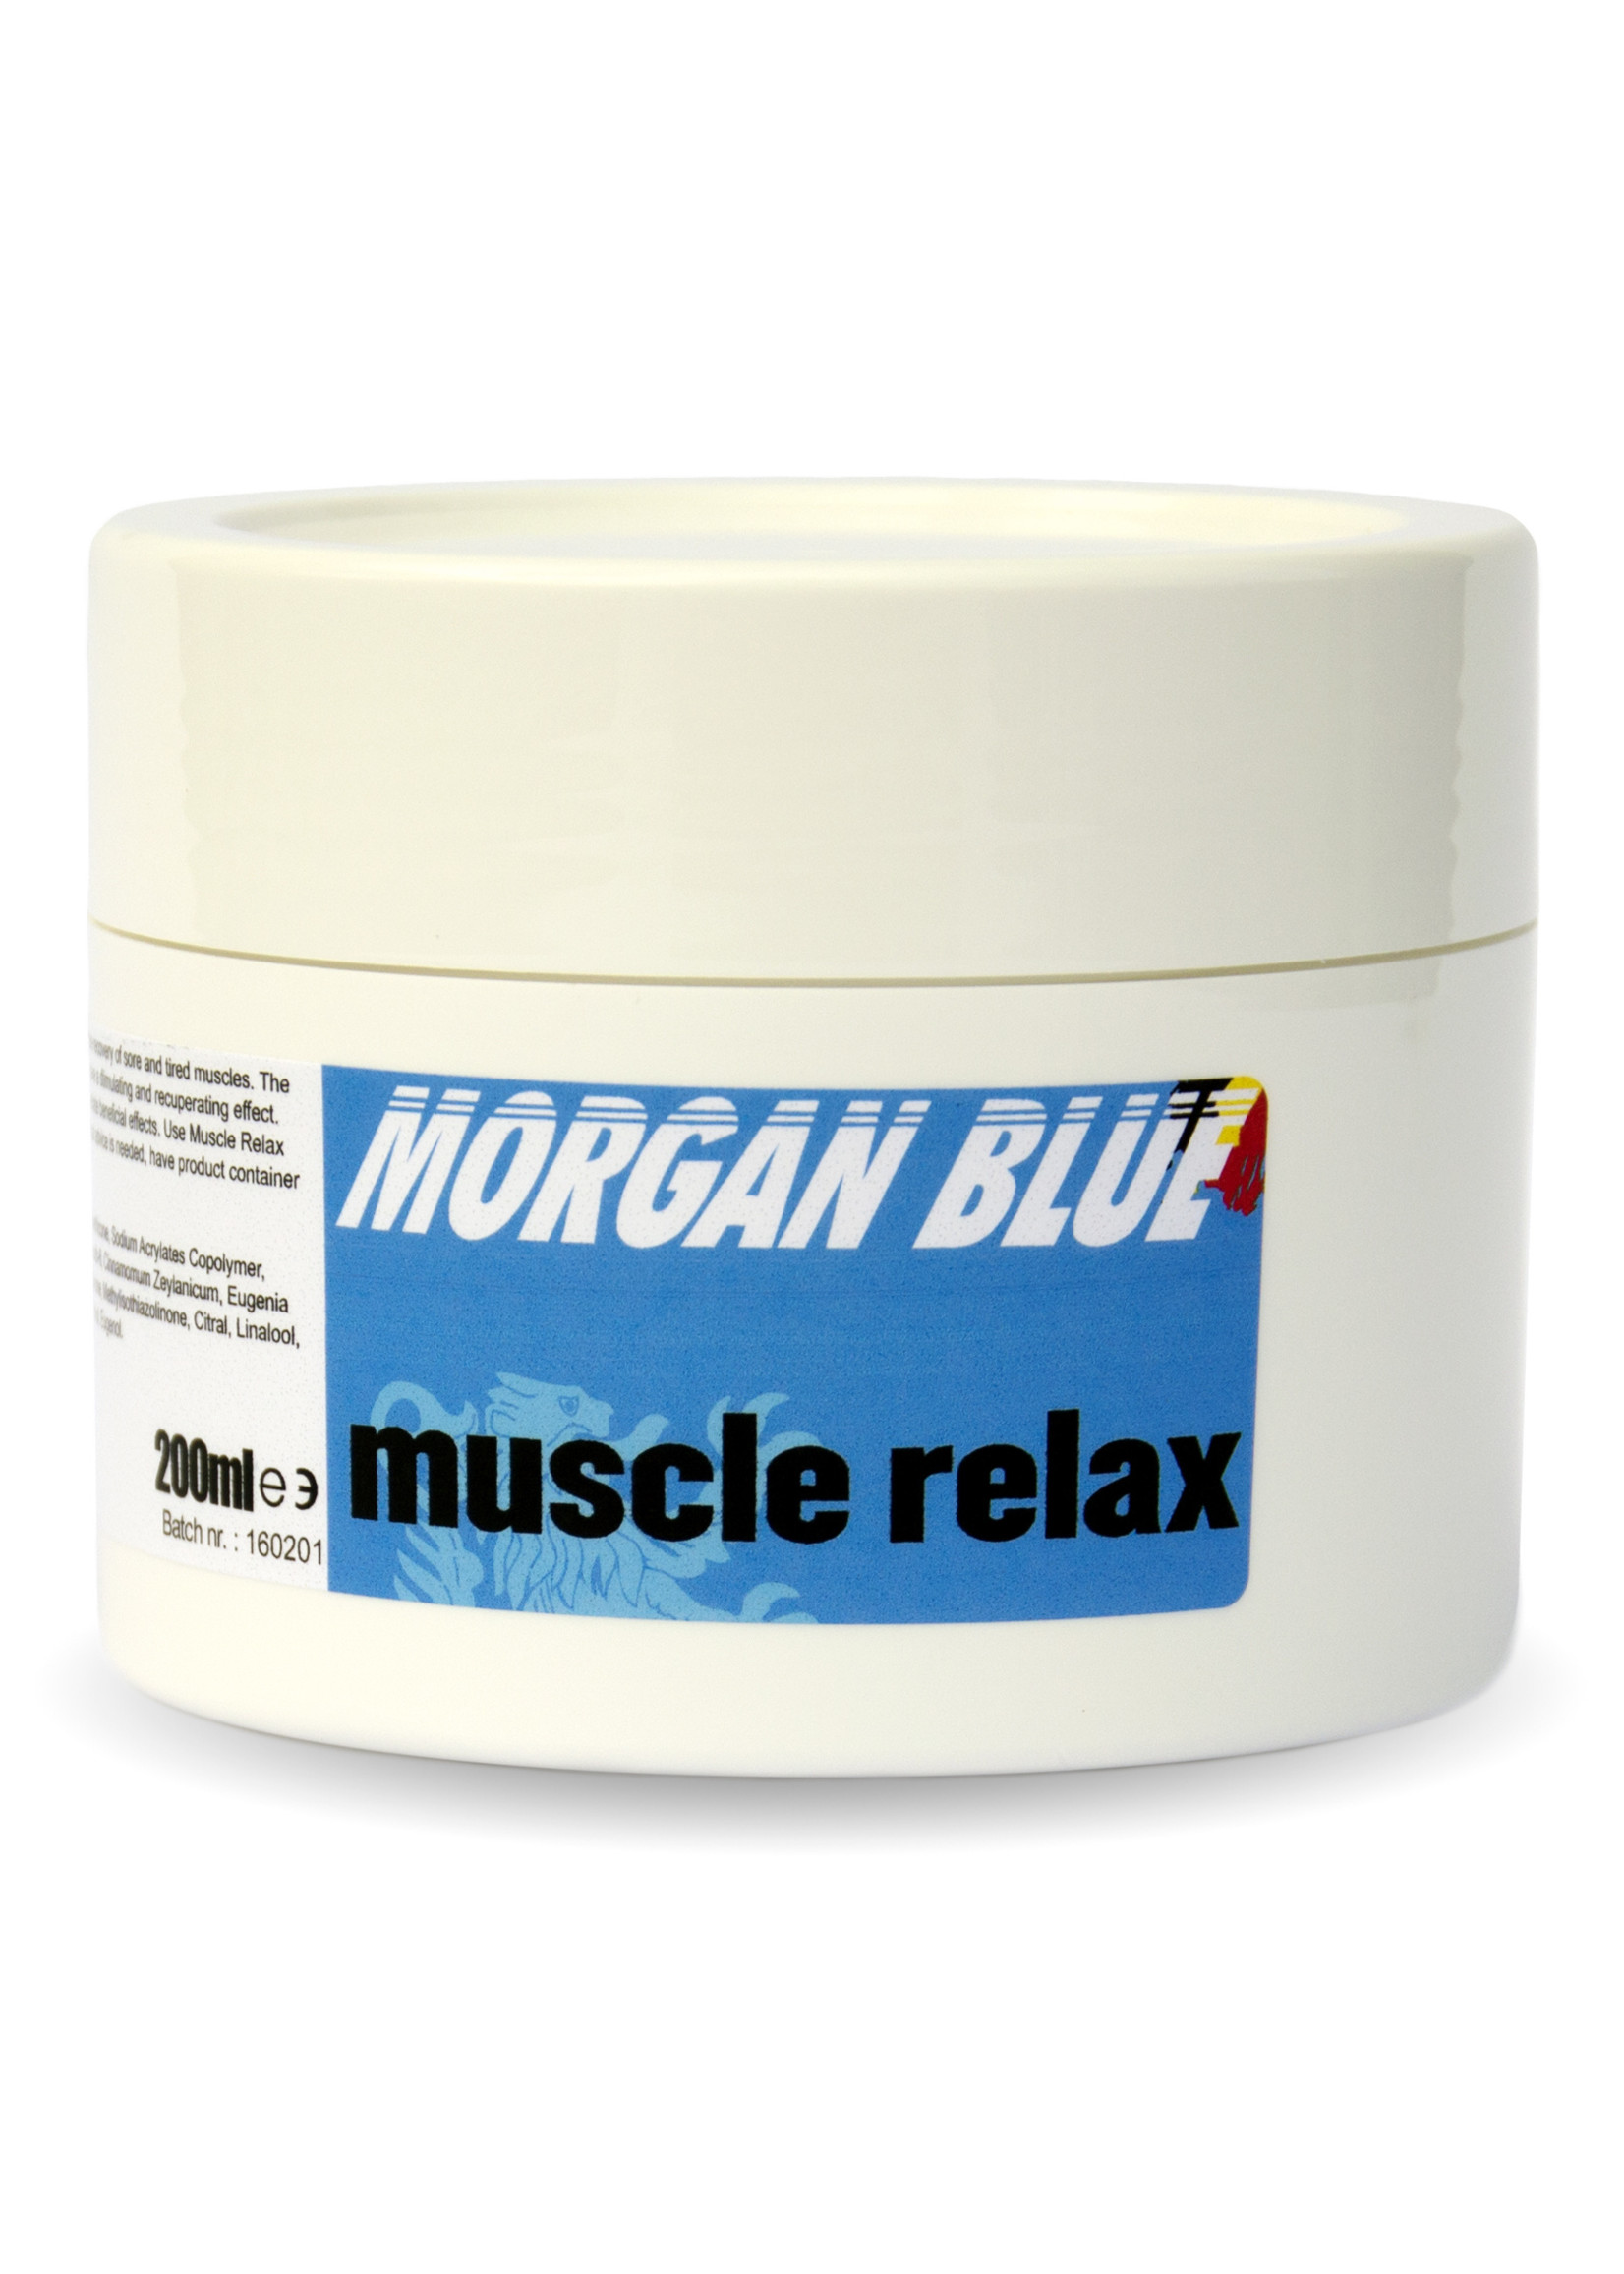 Morgan Blue Muscle Relax